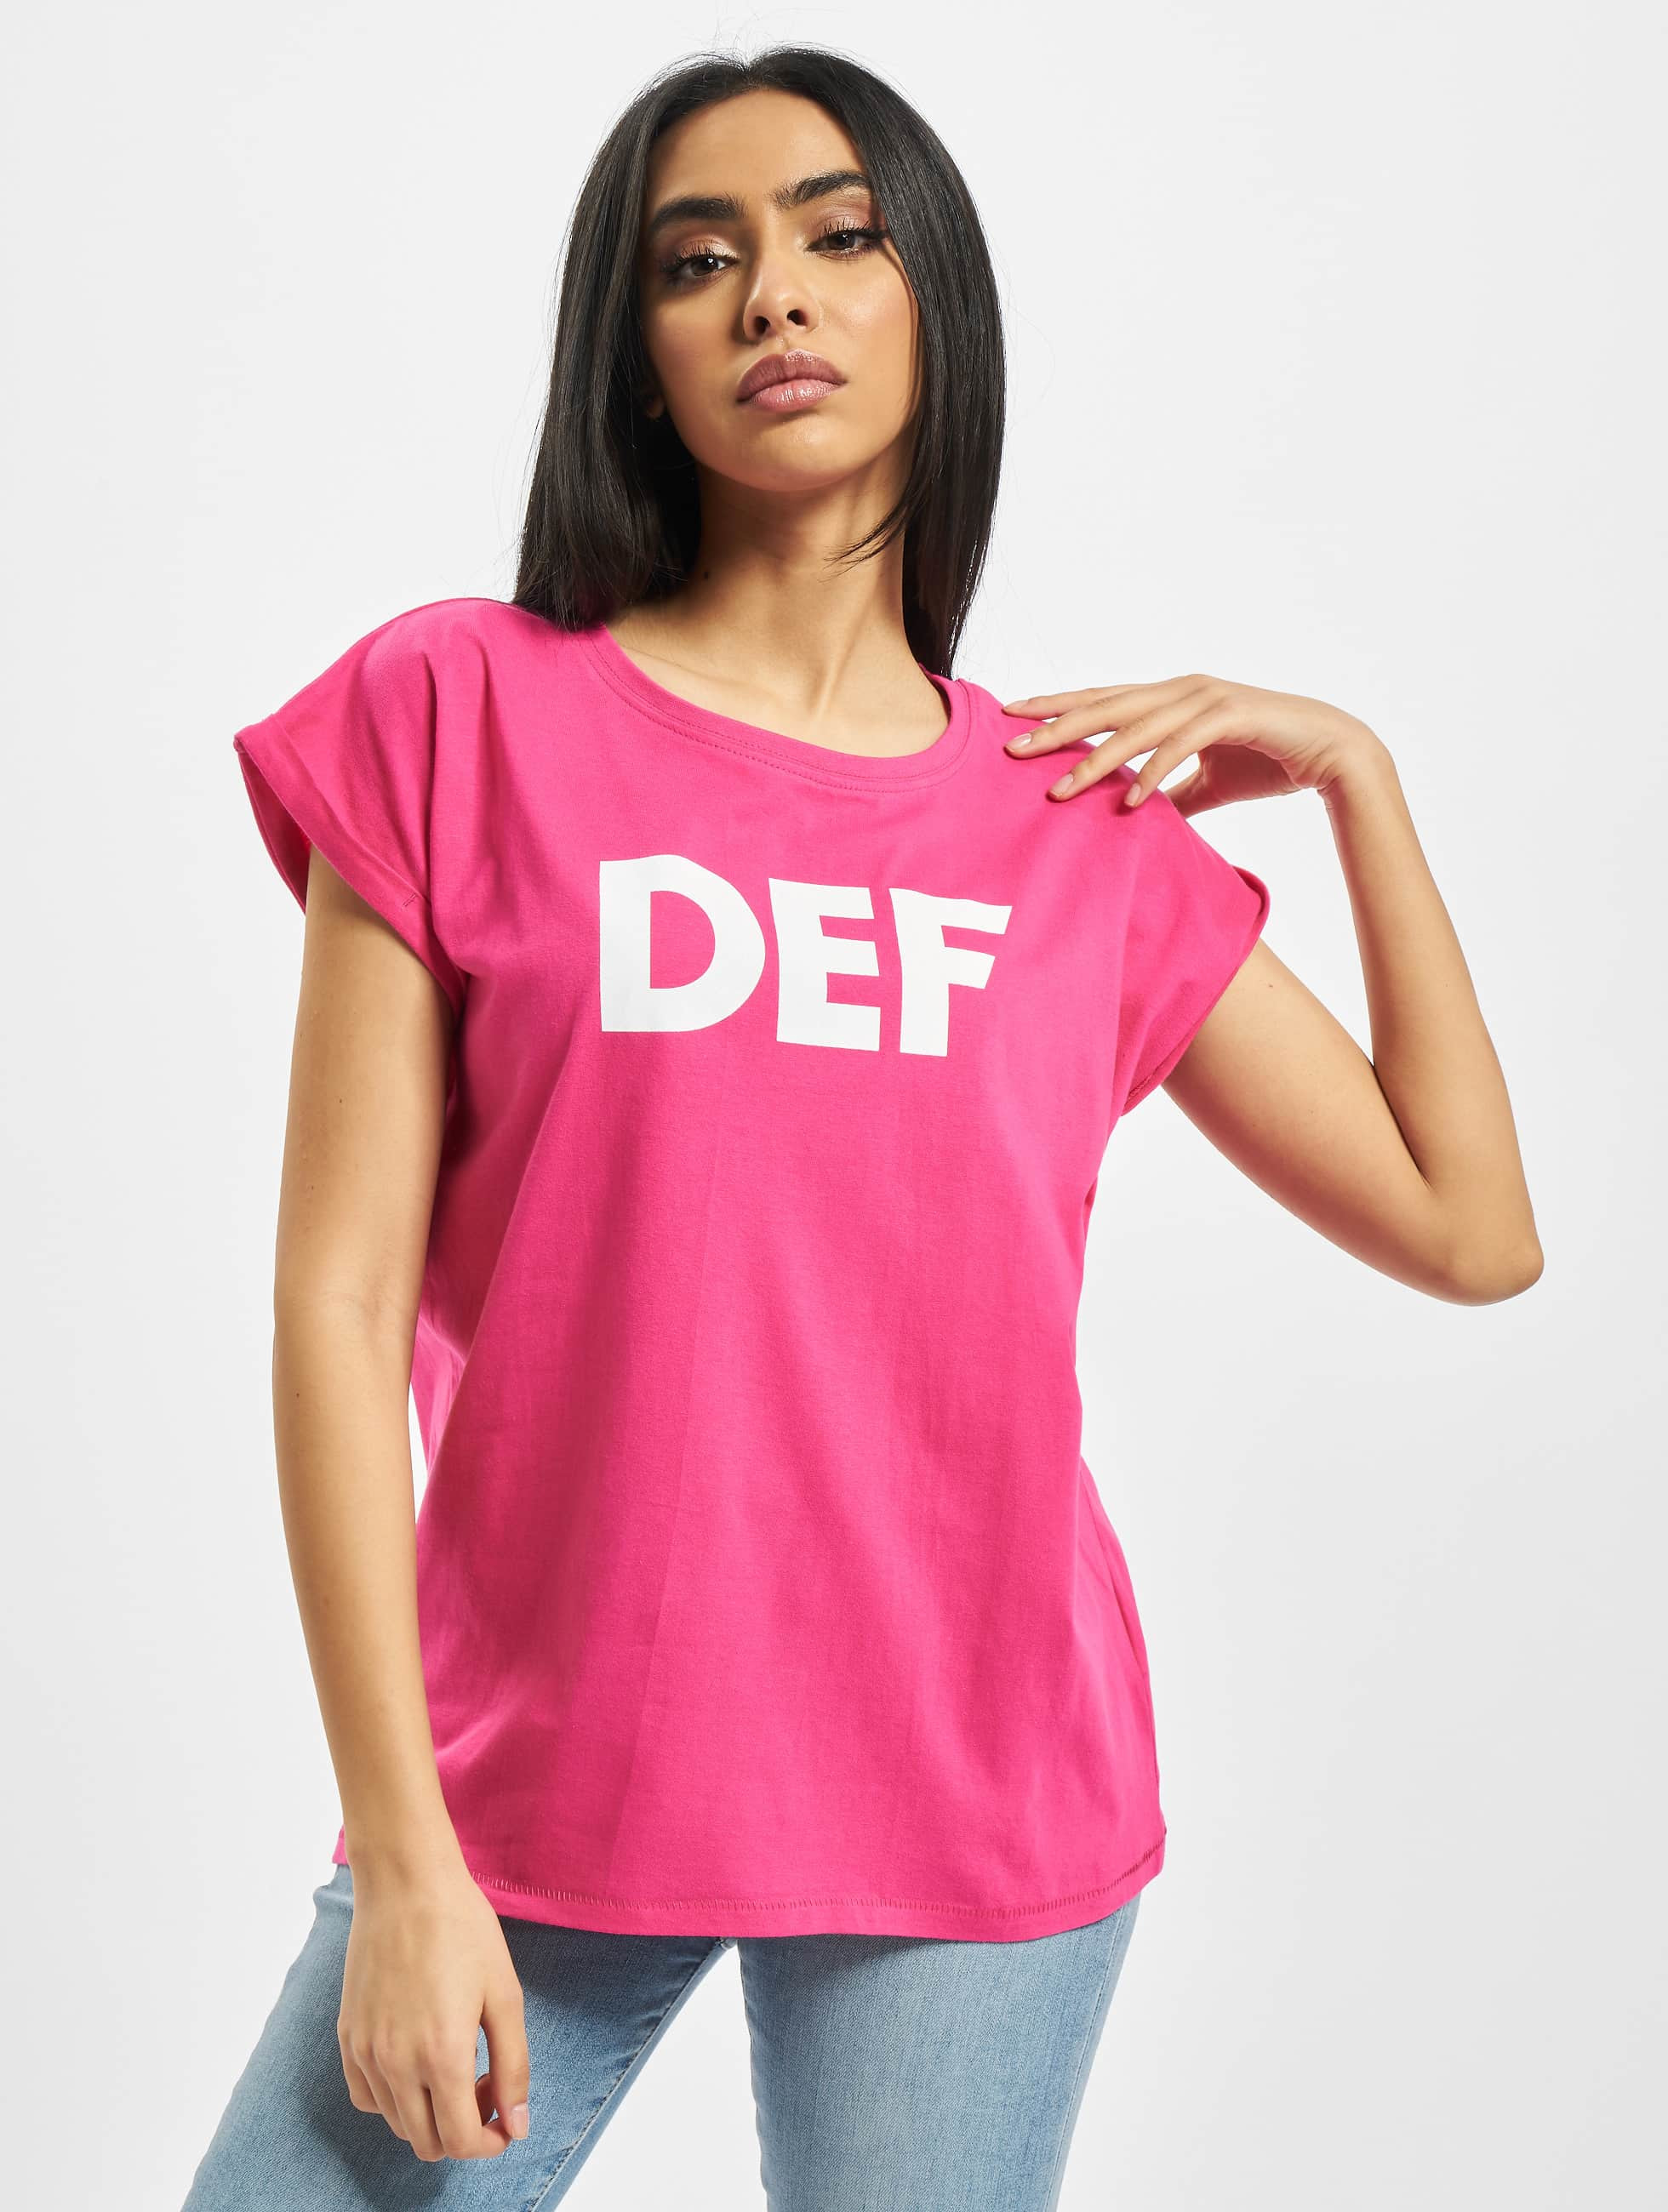 DEF / T-Shirt Sizza in pink XS